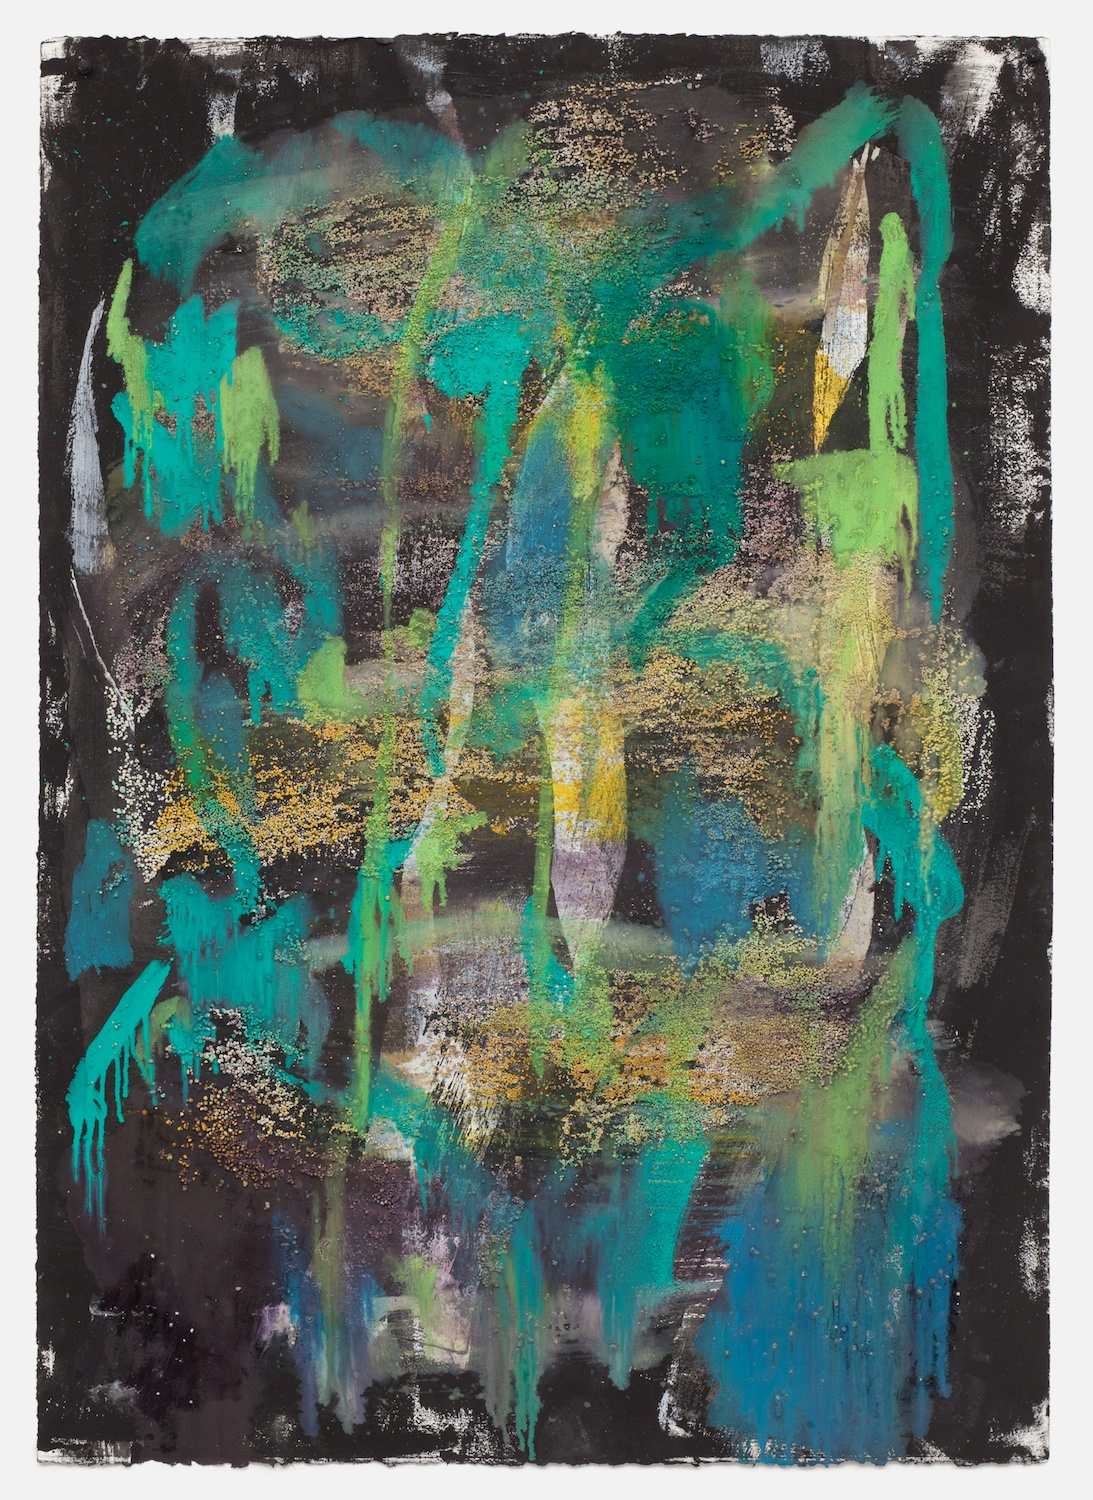 Jon Pestoni  Untitled  2013 Oil and mixed media on paper 40h x 30w in JP142